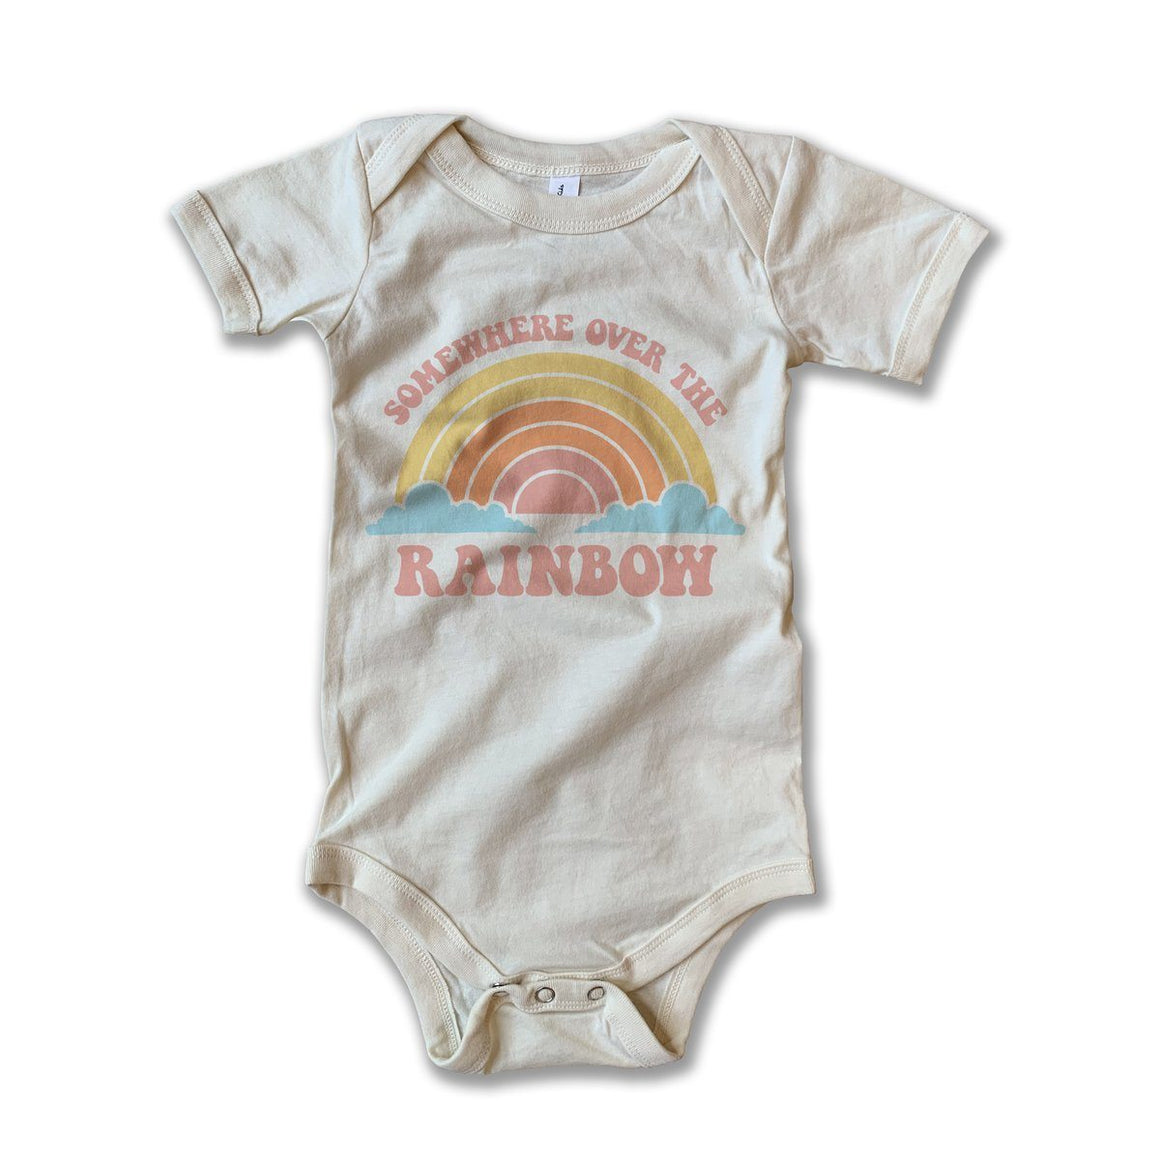 Rivet Apparel Co. - Over the Rainbow Unisex Baby Onesie Onesie Rivet Apparel Co.